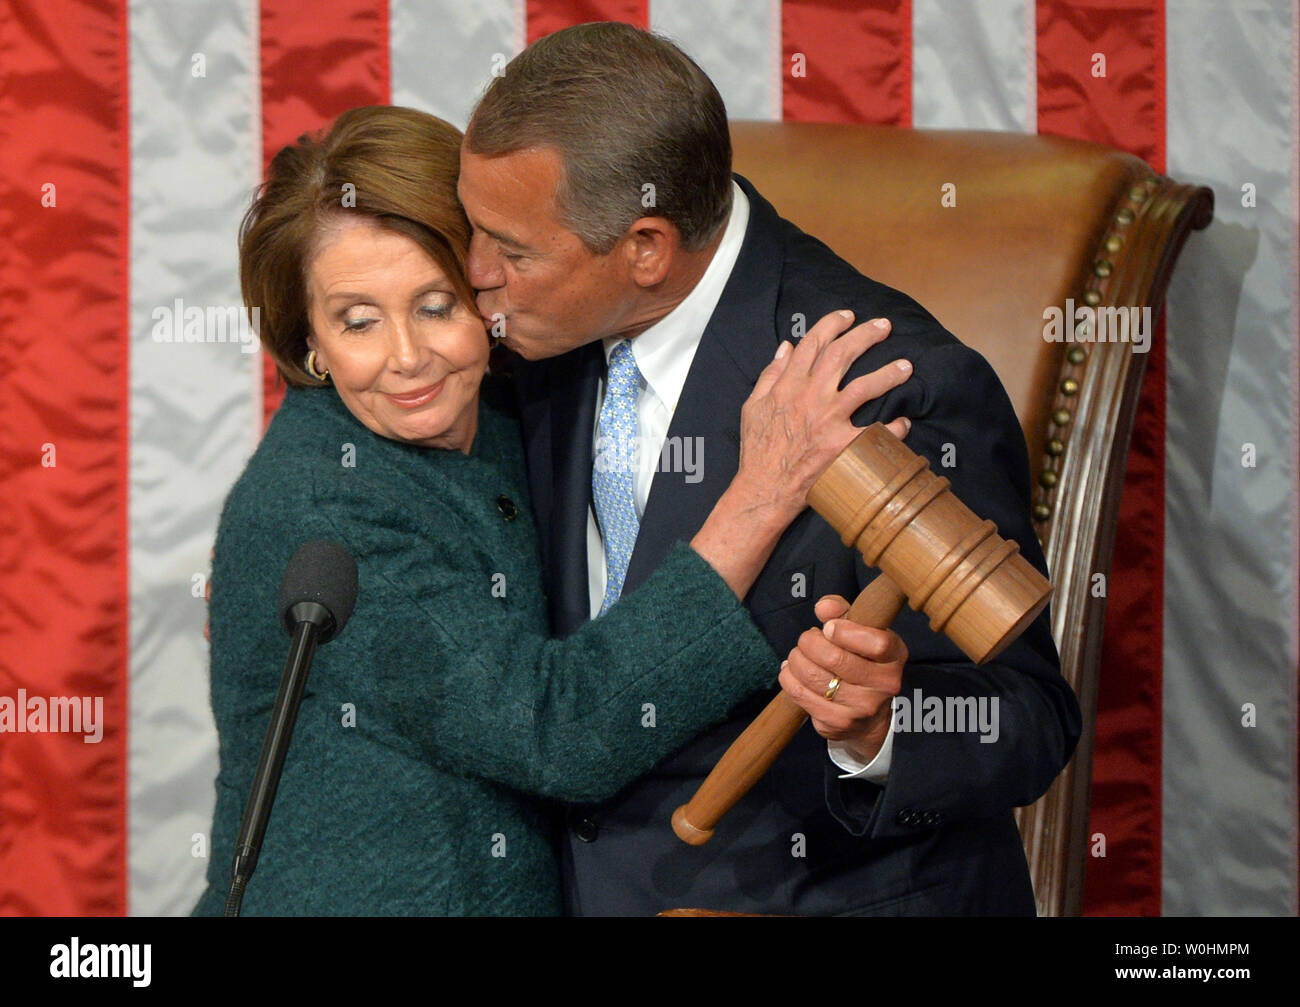 Speaker of the House John Boehner, R-OH, kisses House Minority Leader Nancy Pelosi, D-CA, after he was re-elected Speaker during the first day of the 114th Congress inside the House Chambers of the U.S. Capitol Building in Washington, D.C. on January 6, 2015. Photo by Kevin Dietsch/UPI - Stock Image